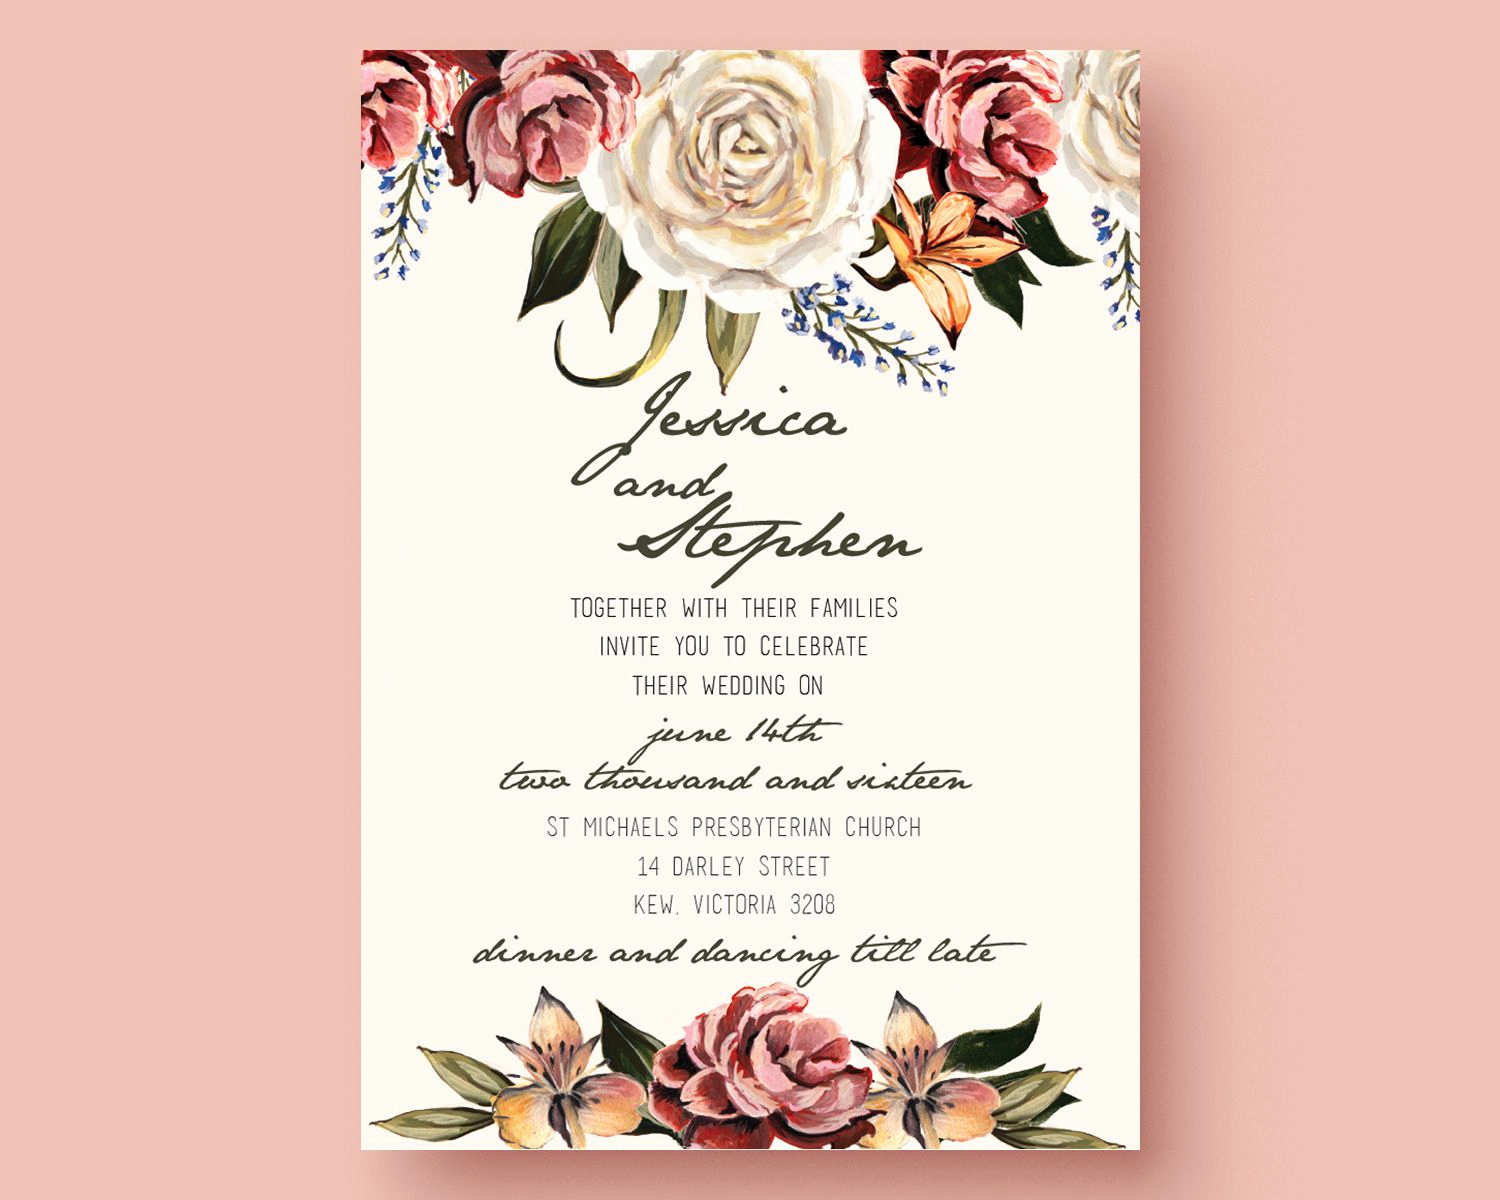 Wedding Invitation Templates Free Downloads Best Of Get the Template Free This is An Adobe